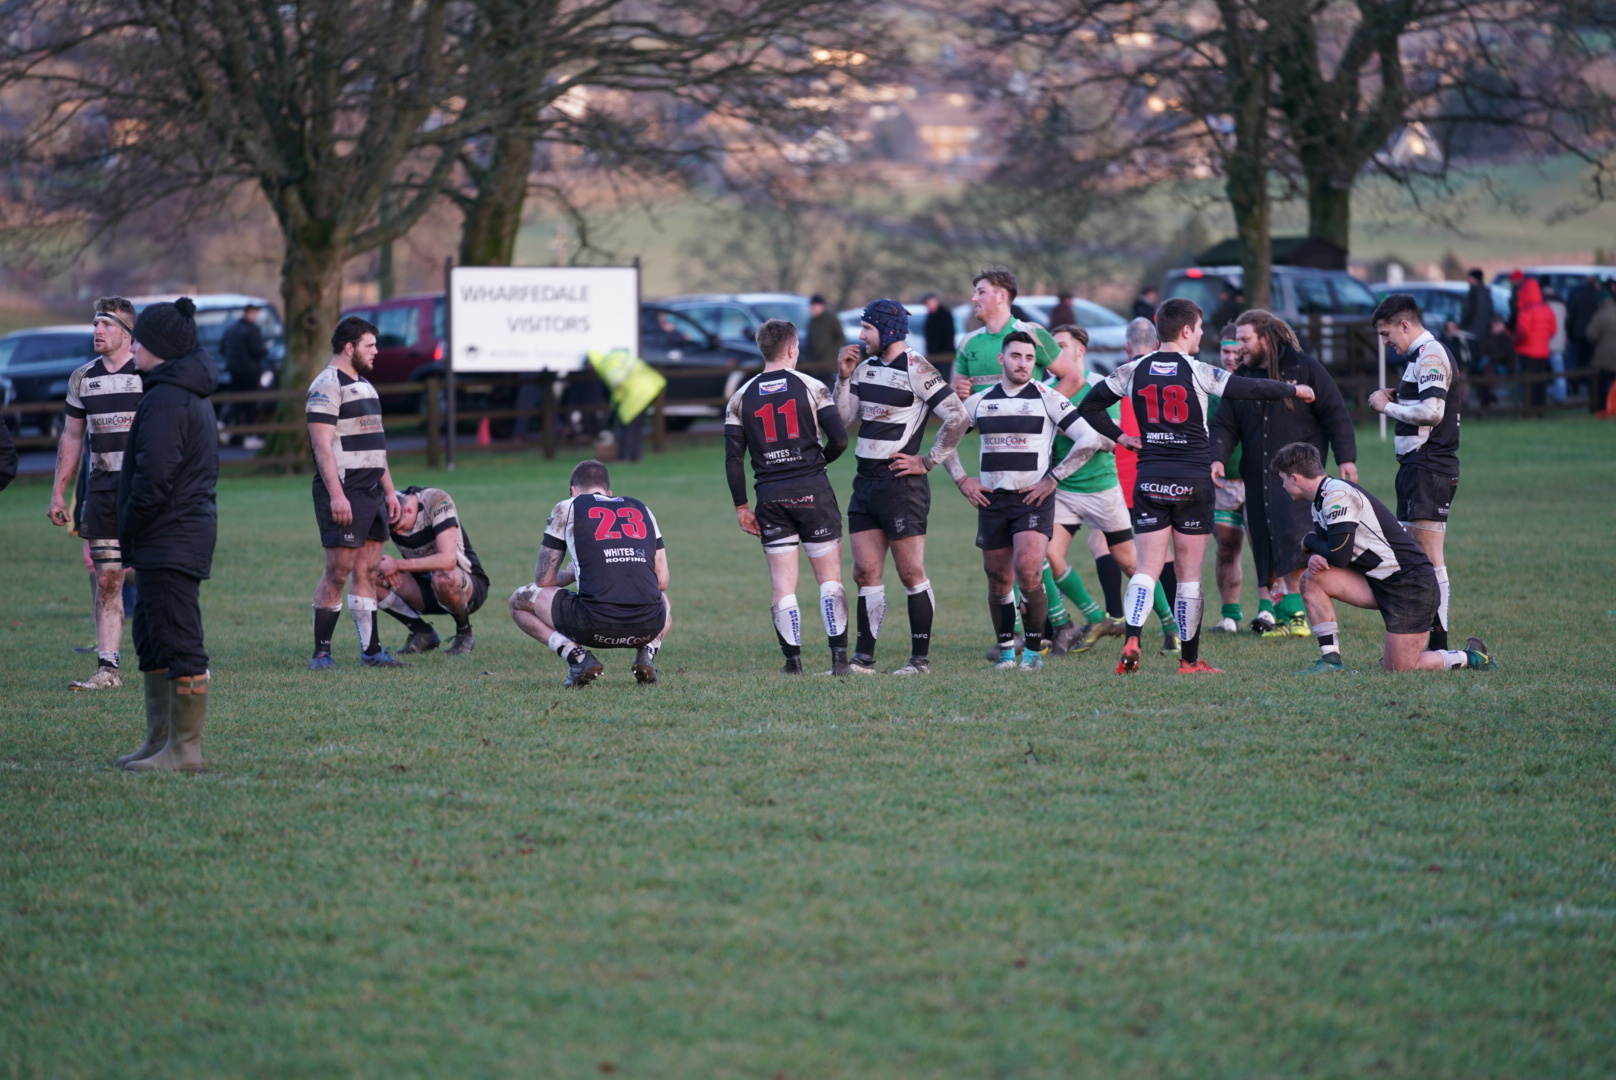 The Luctonians players are crestfallen after losing 34-15 to Wharfedale. Photo: Nigel Mee